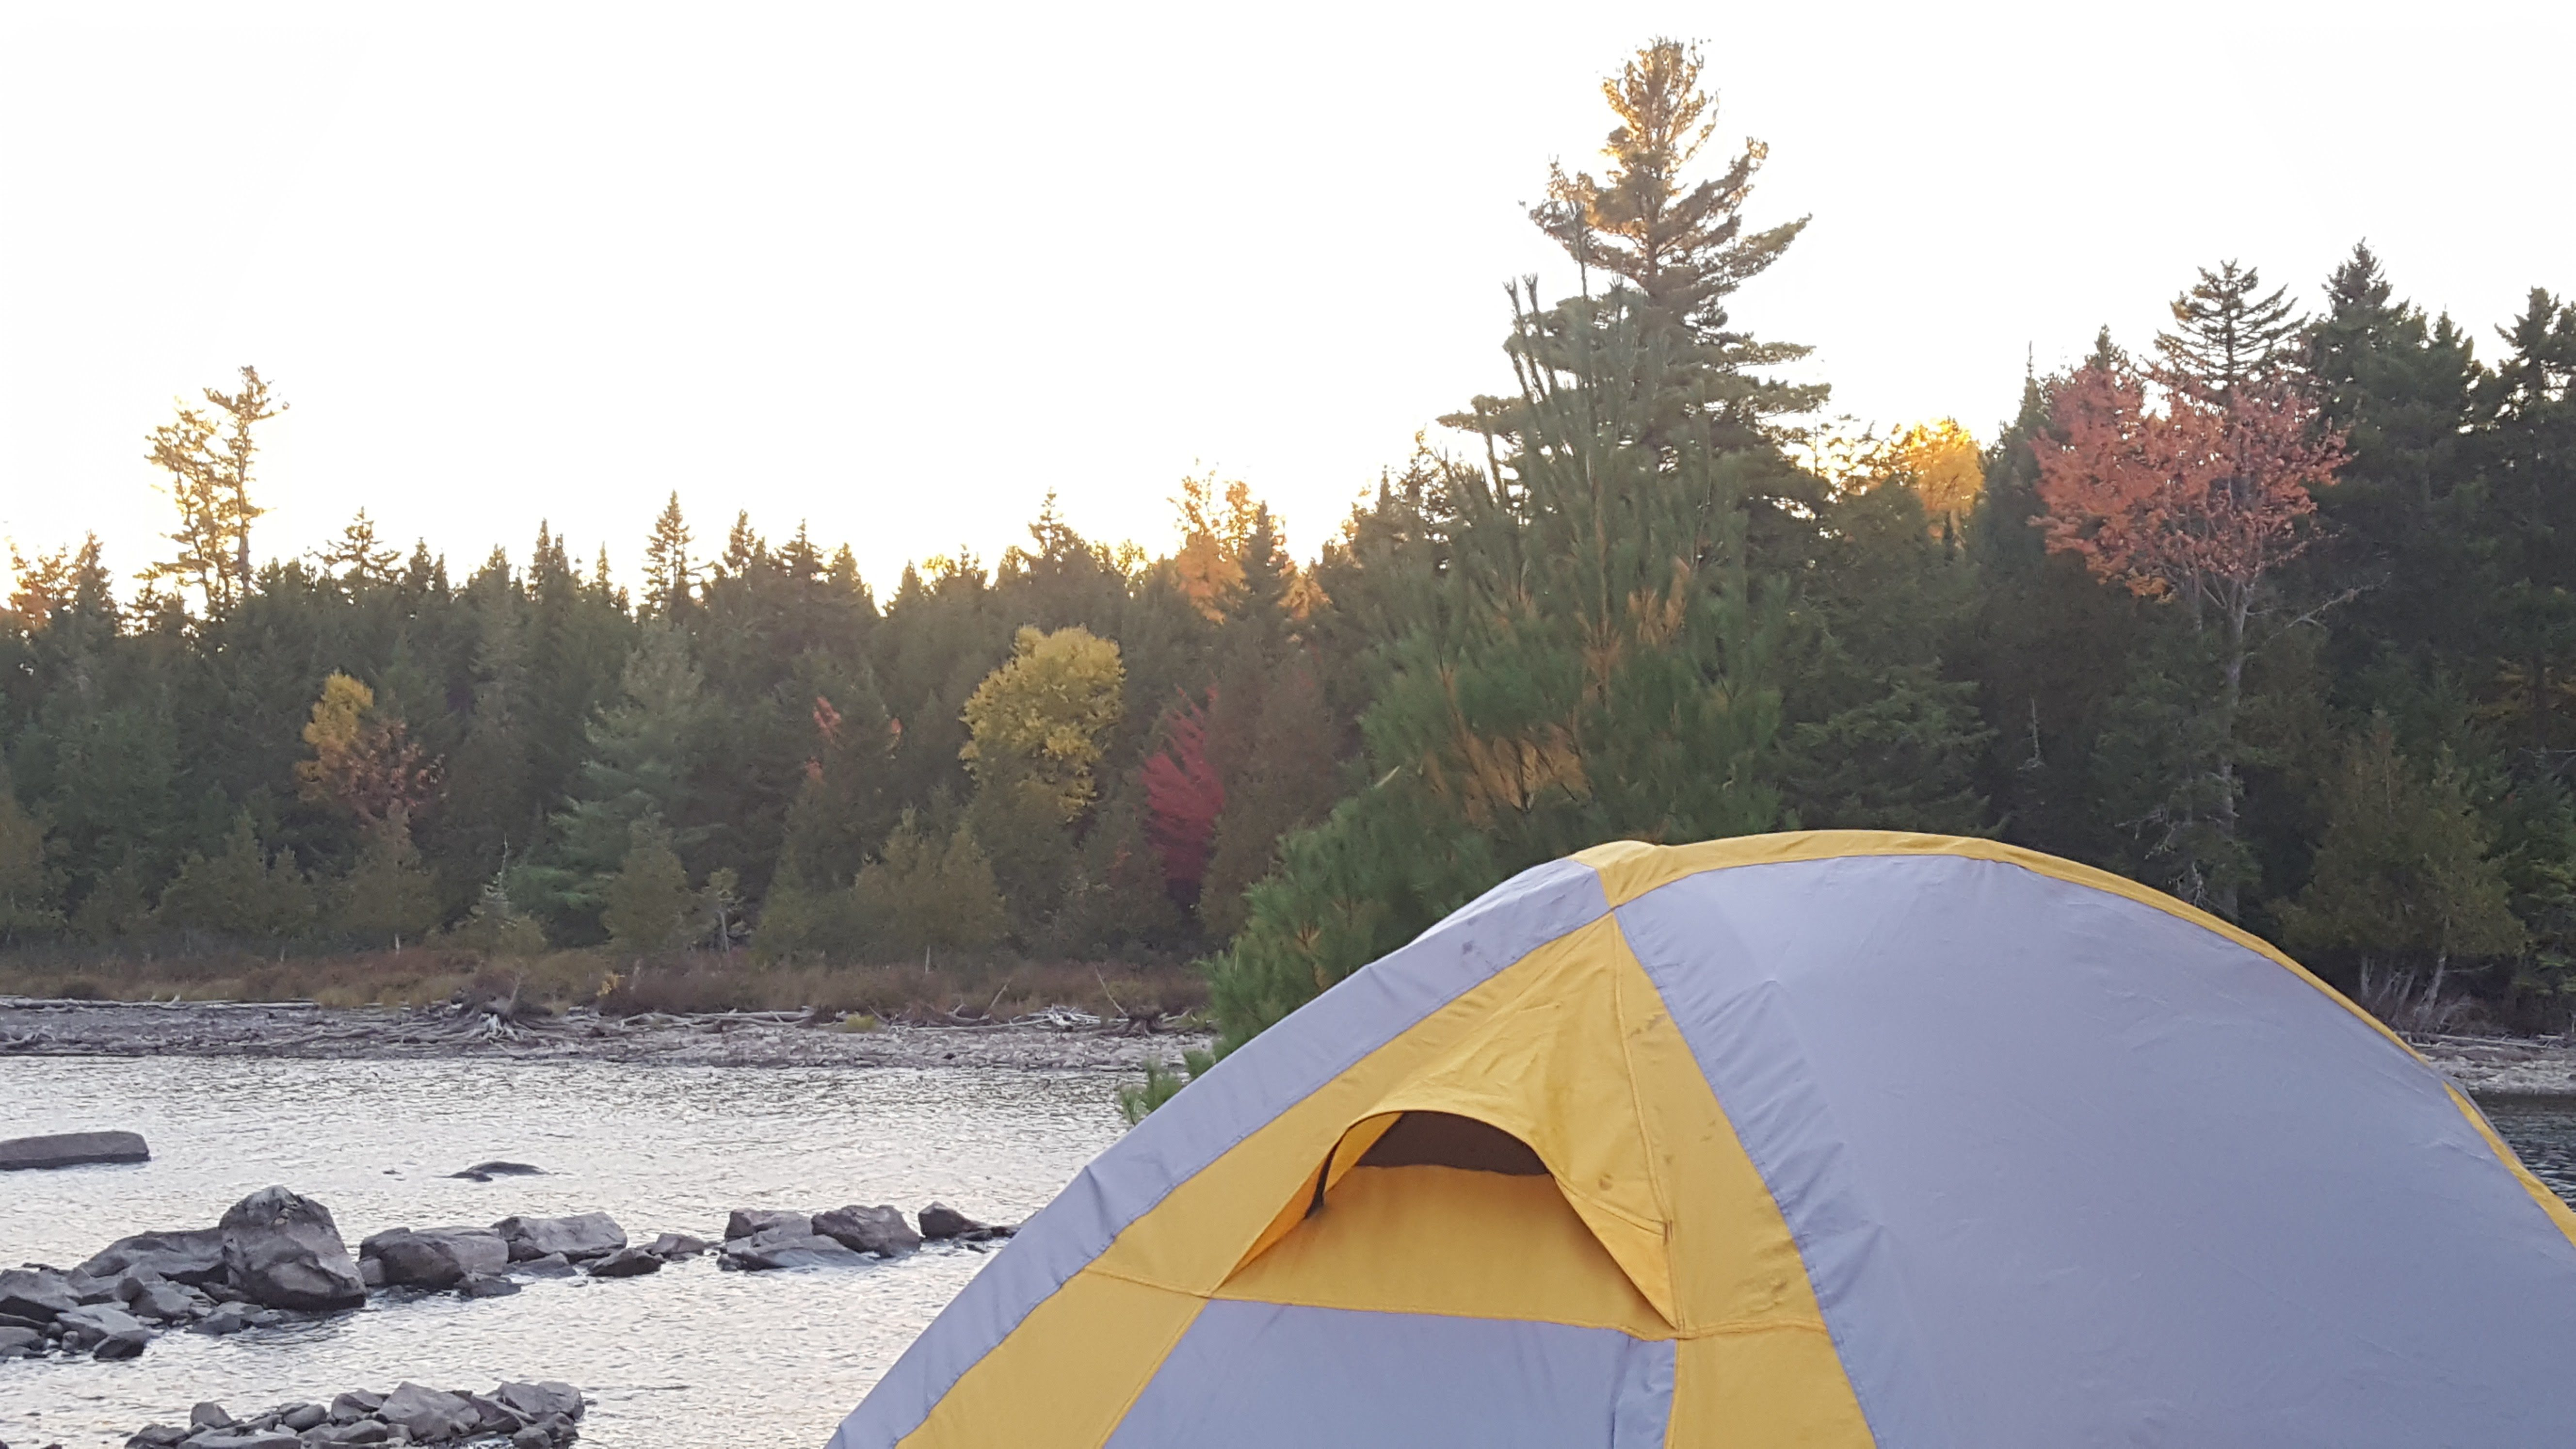 Mud Brook Camp Site in Lily Bay State Park